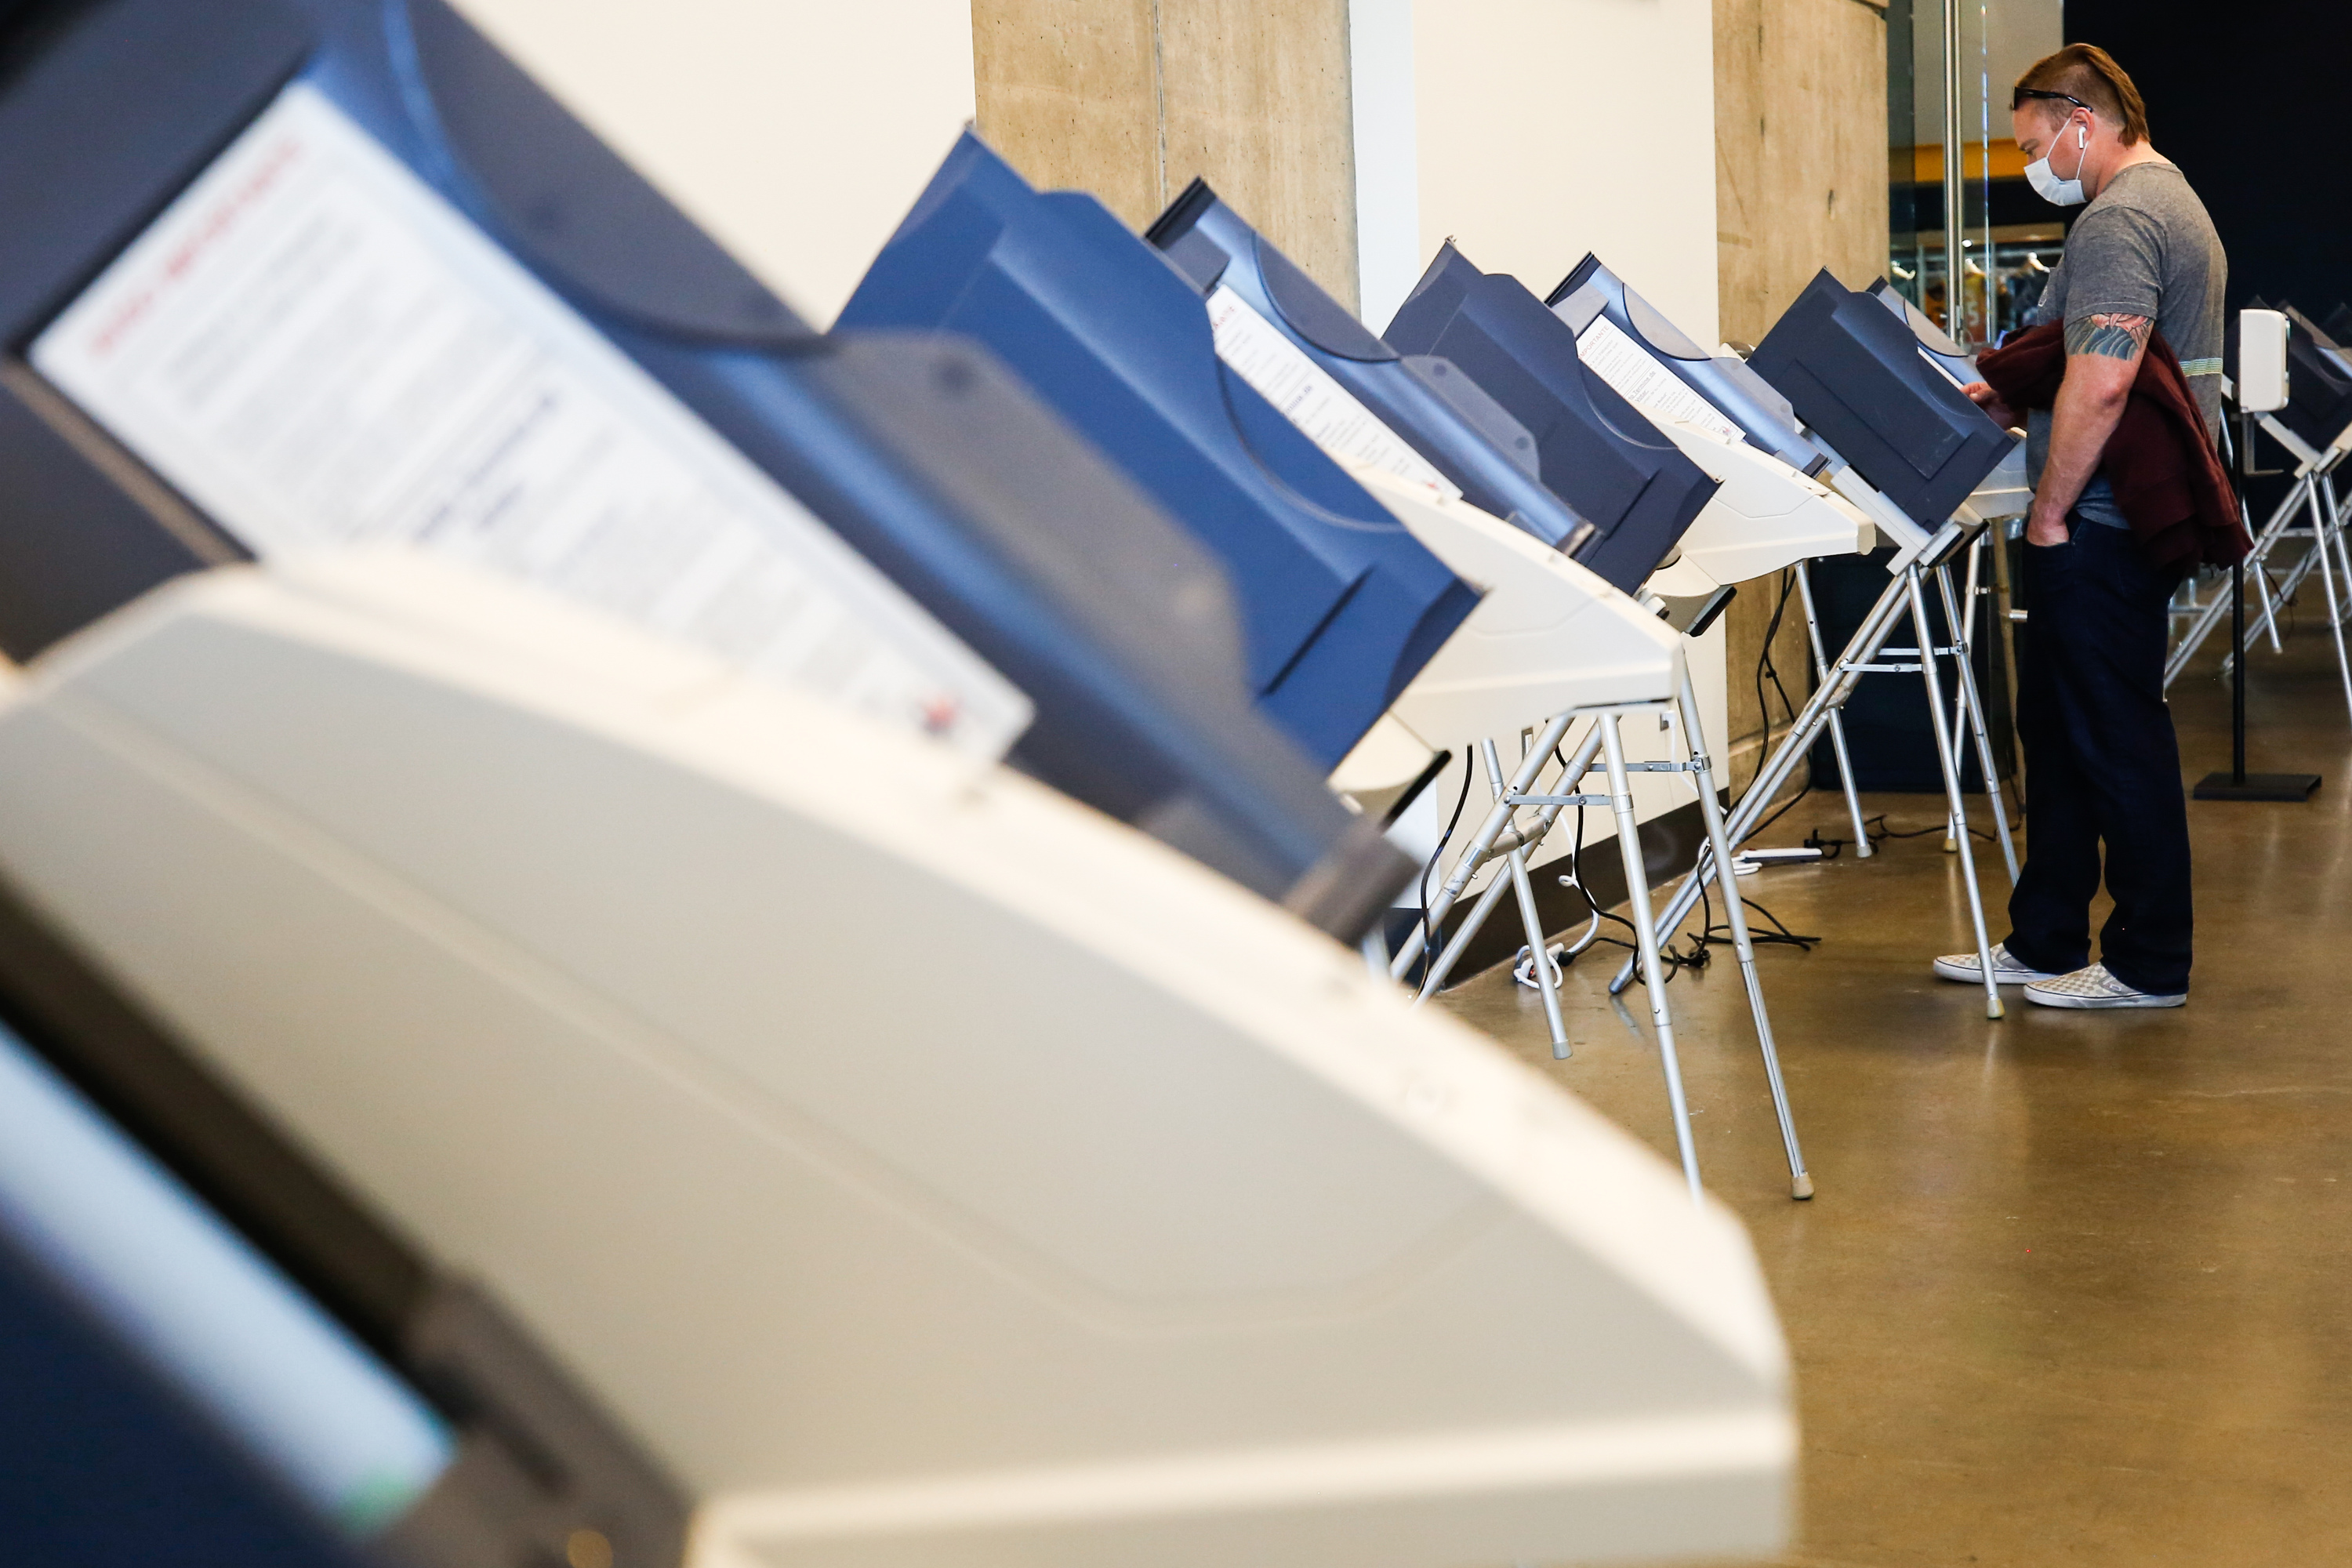 A voter fills in the ballot on the voting machine during the Election Day voting at Vivint SmartHome Arena.